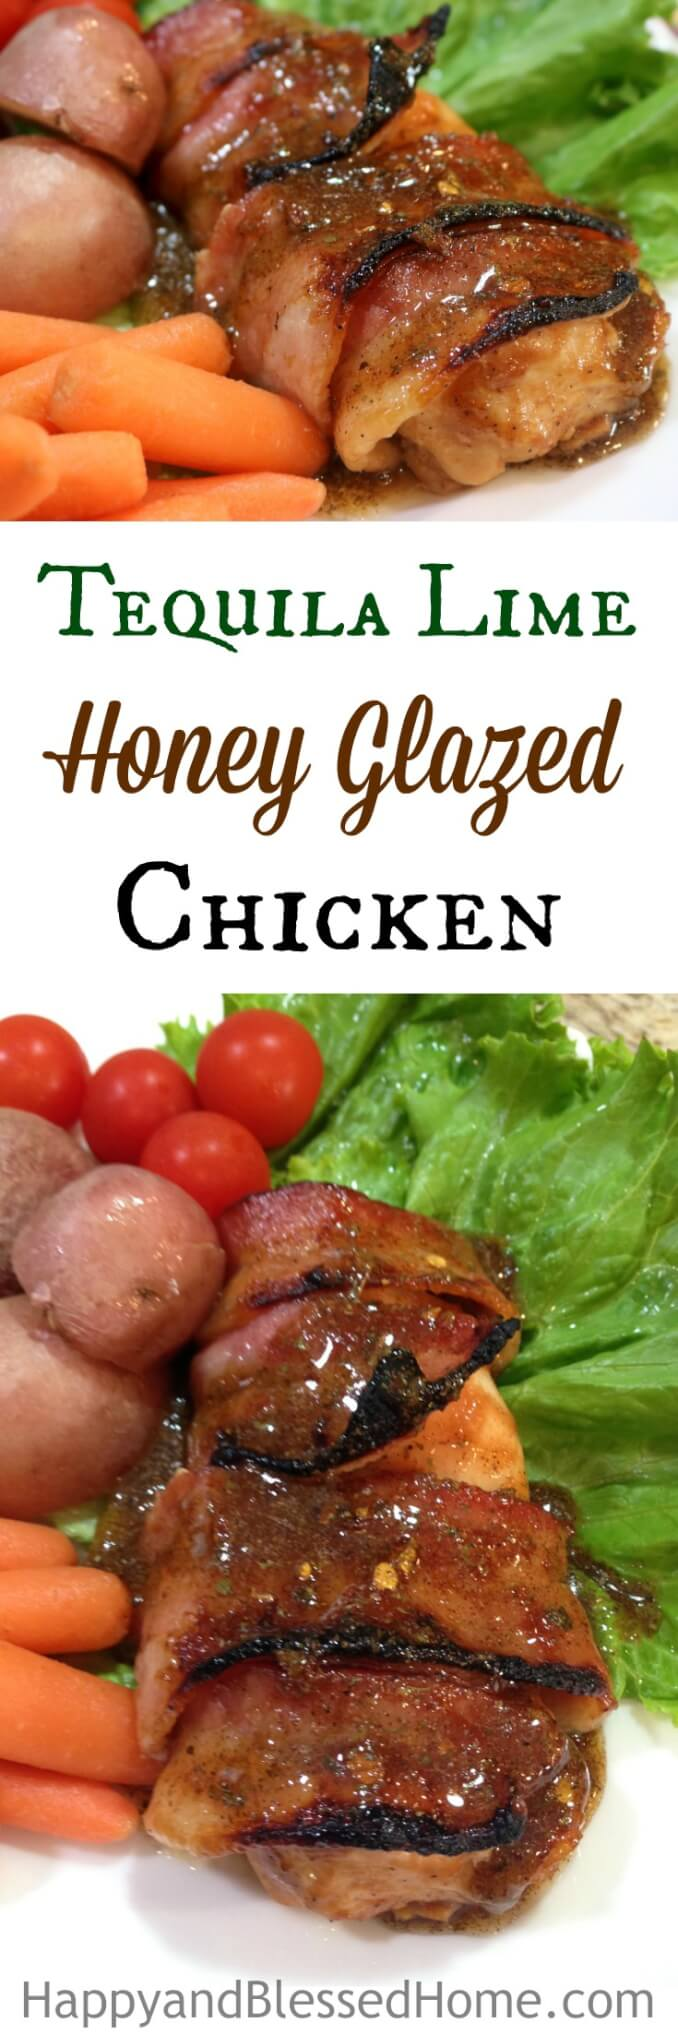 Easy Recipe for Mouthwatering Tequila Lime Honey Glazed Chicken with Bacon